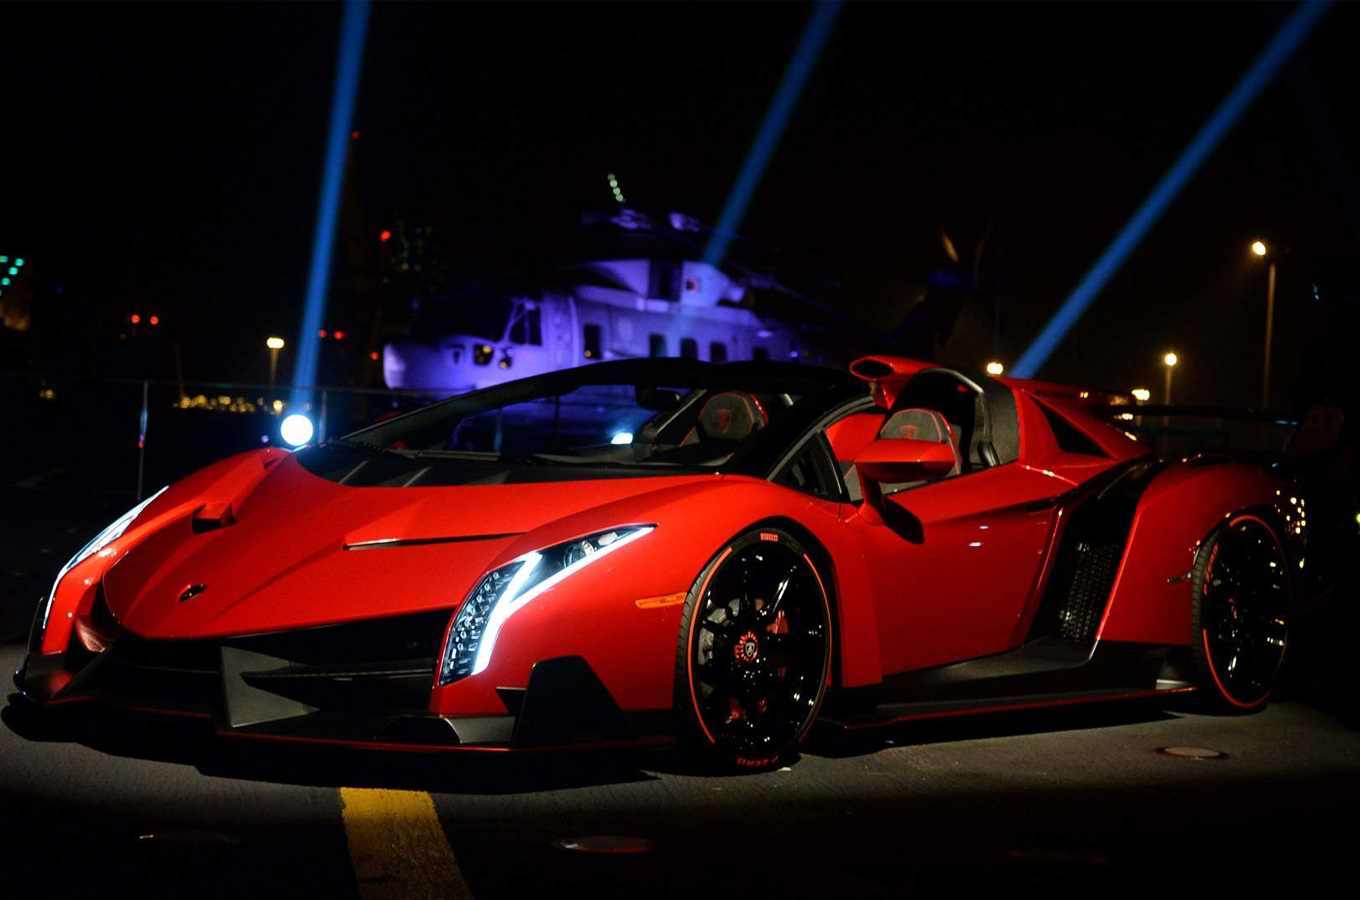 The Most Expensive Luxury Cars Collection